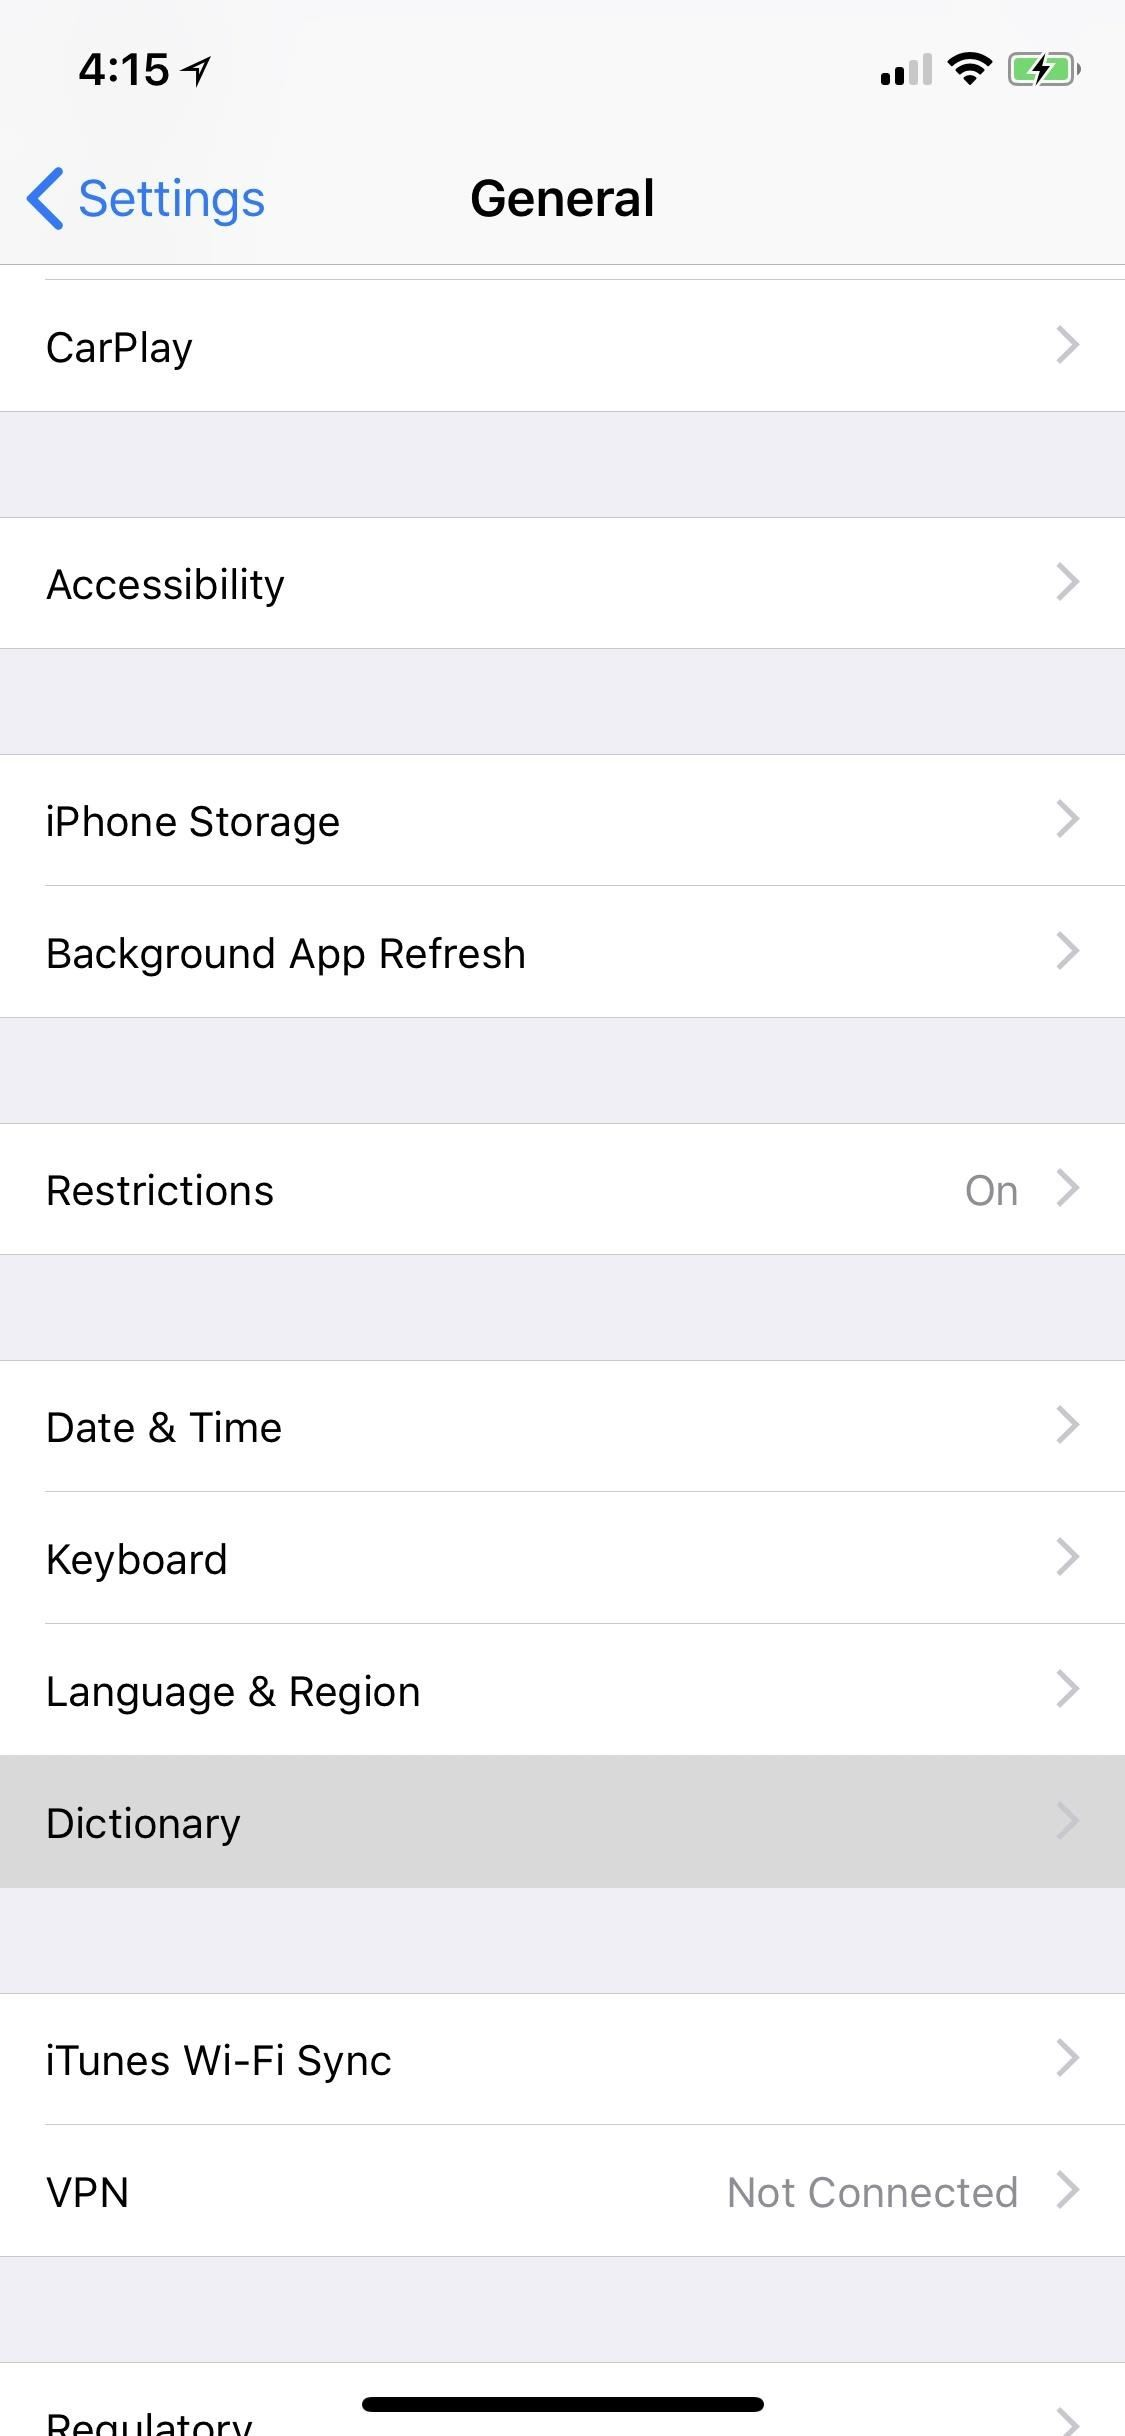 How to Add Foreign Language Dictionaries to Your iPhone to Look Up